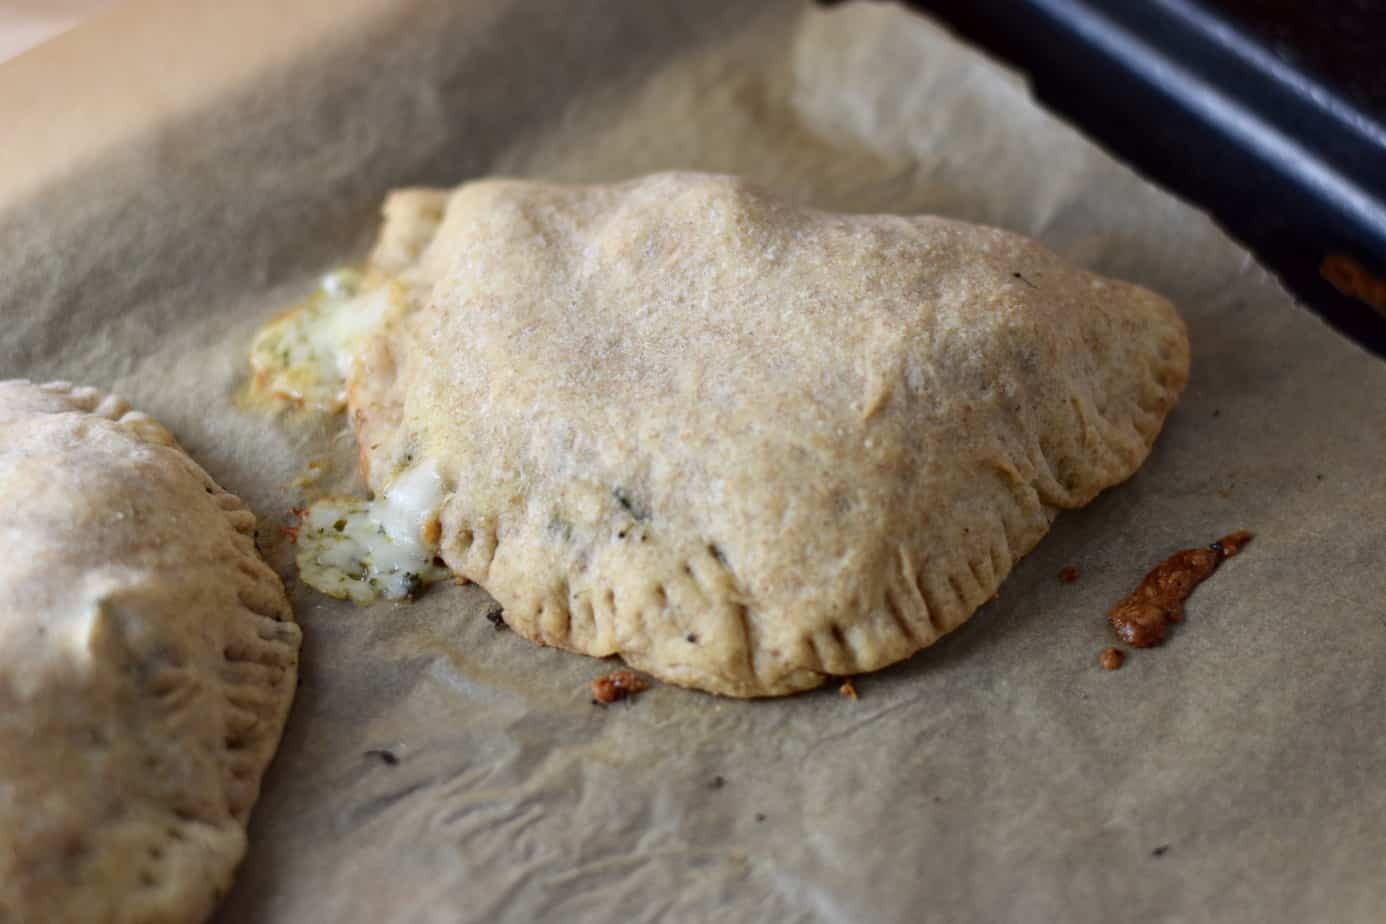 Golden brown savory vegetarian hand pies with broccoli and cheese